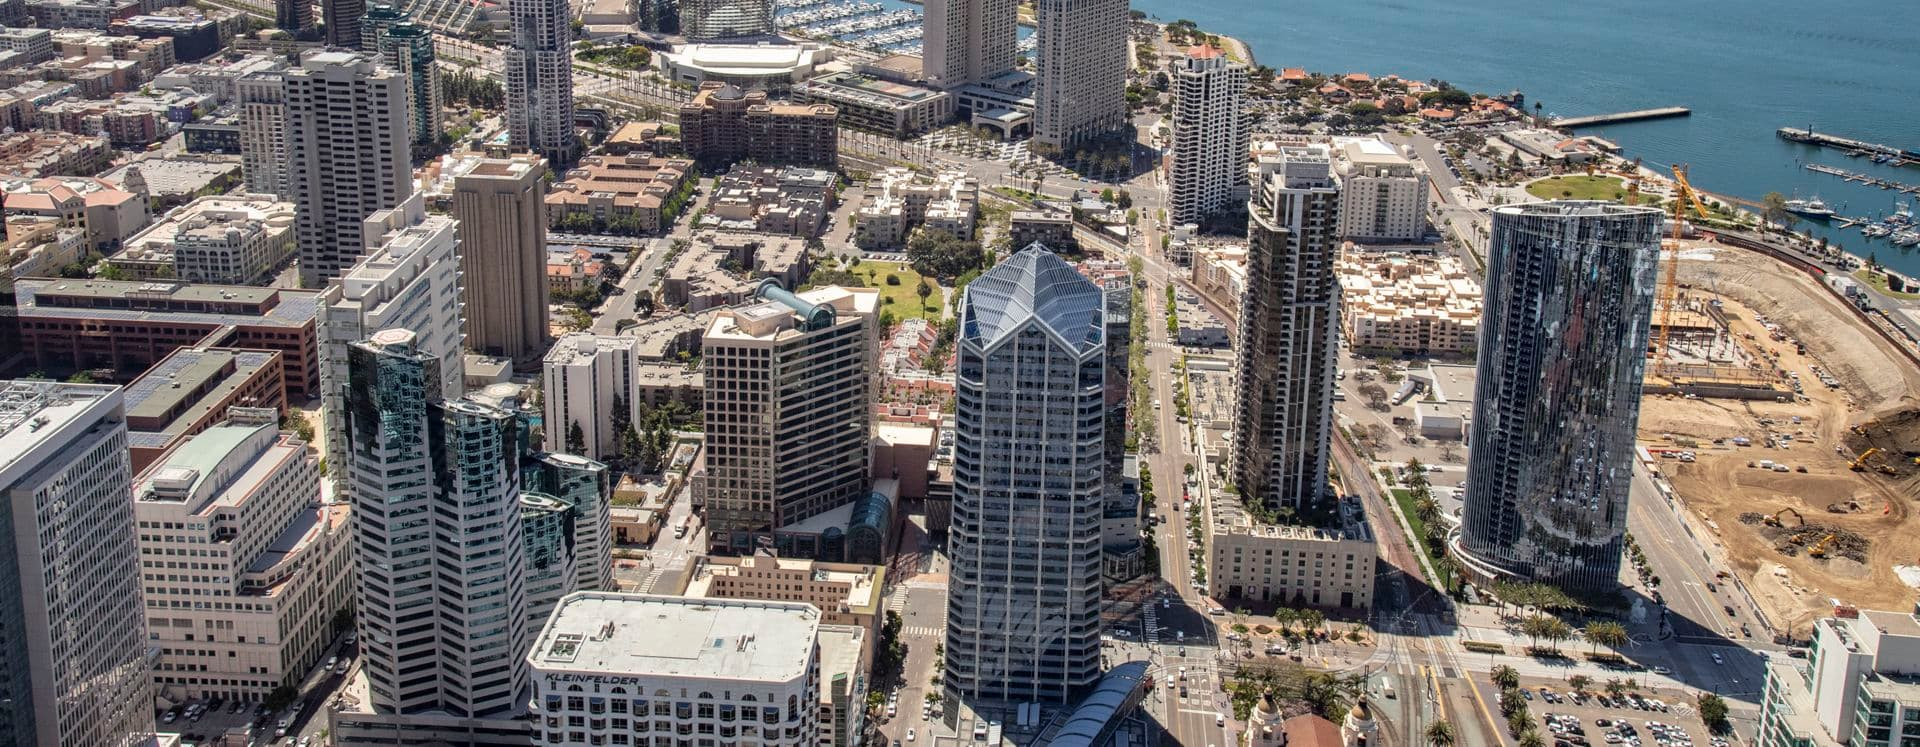 Aerial photography of downtown San Diego featuring One America Plaza and 501 West Broadway in San Diego, CA